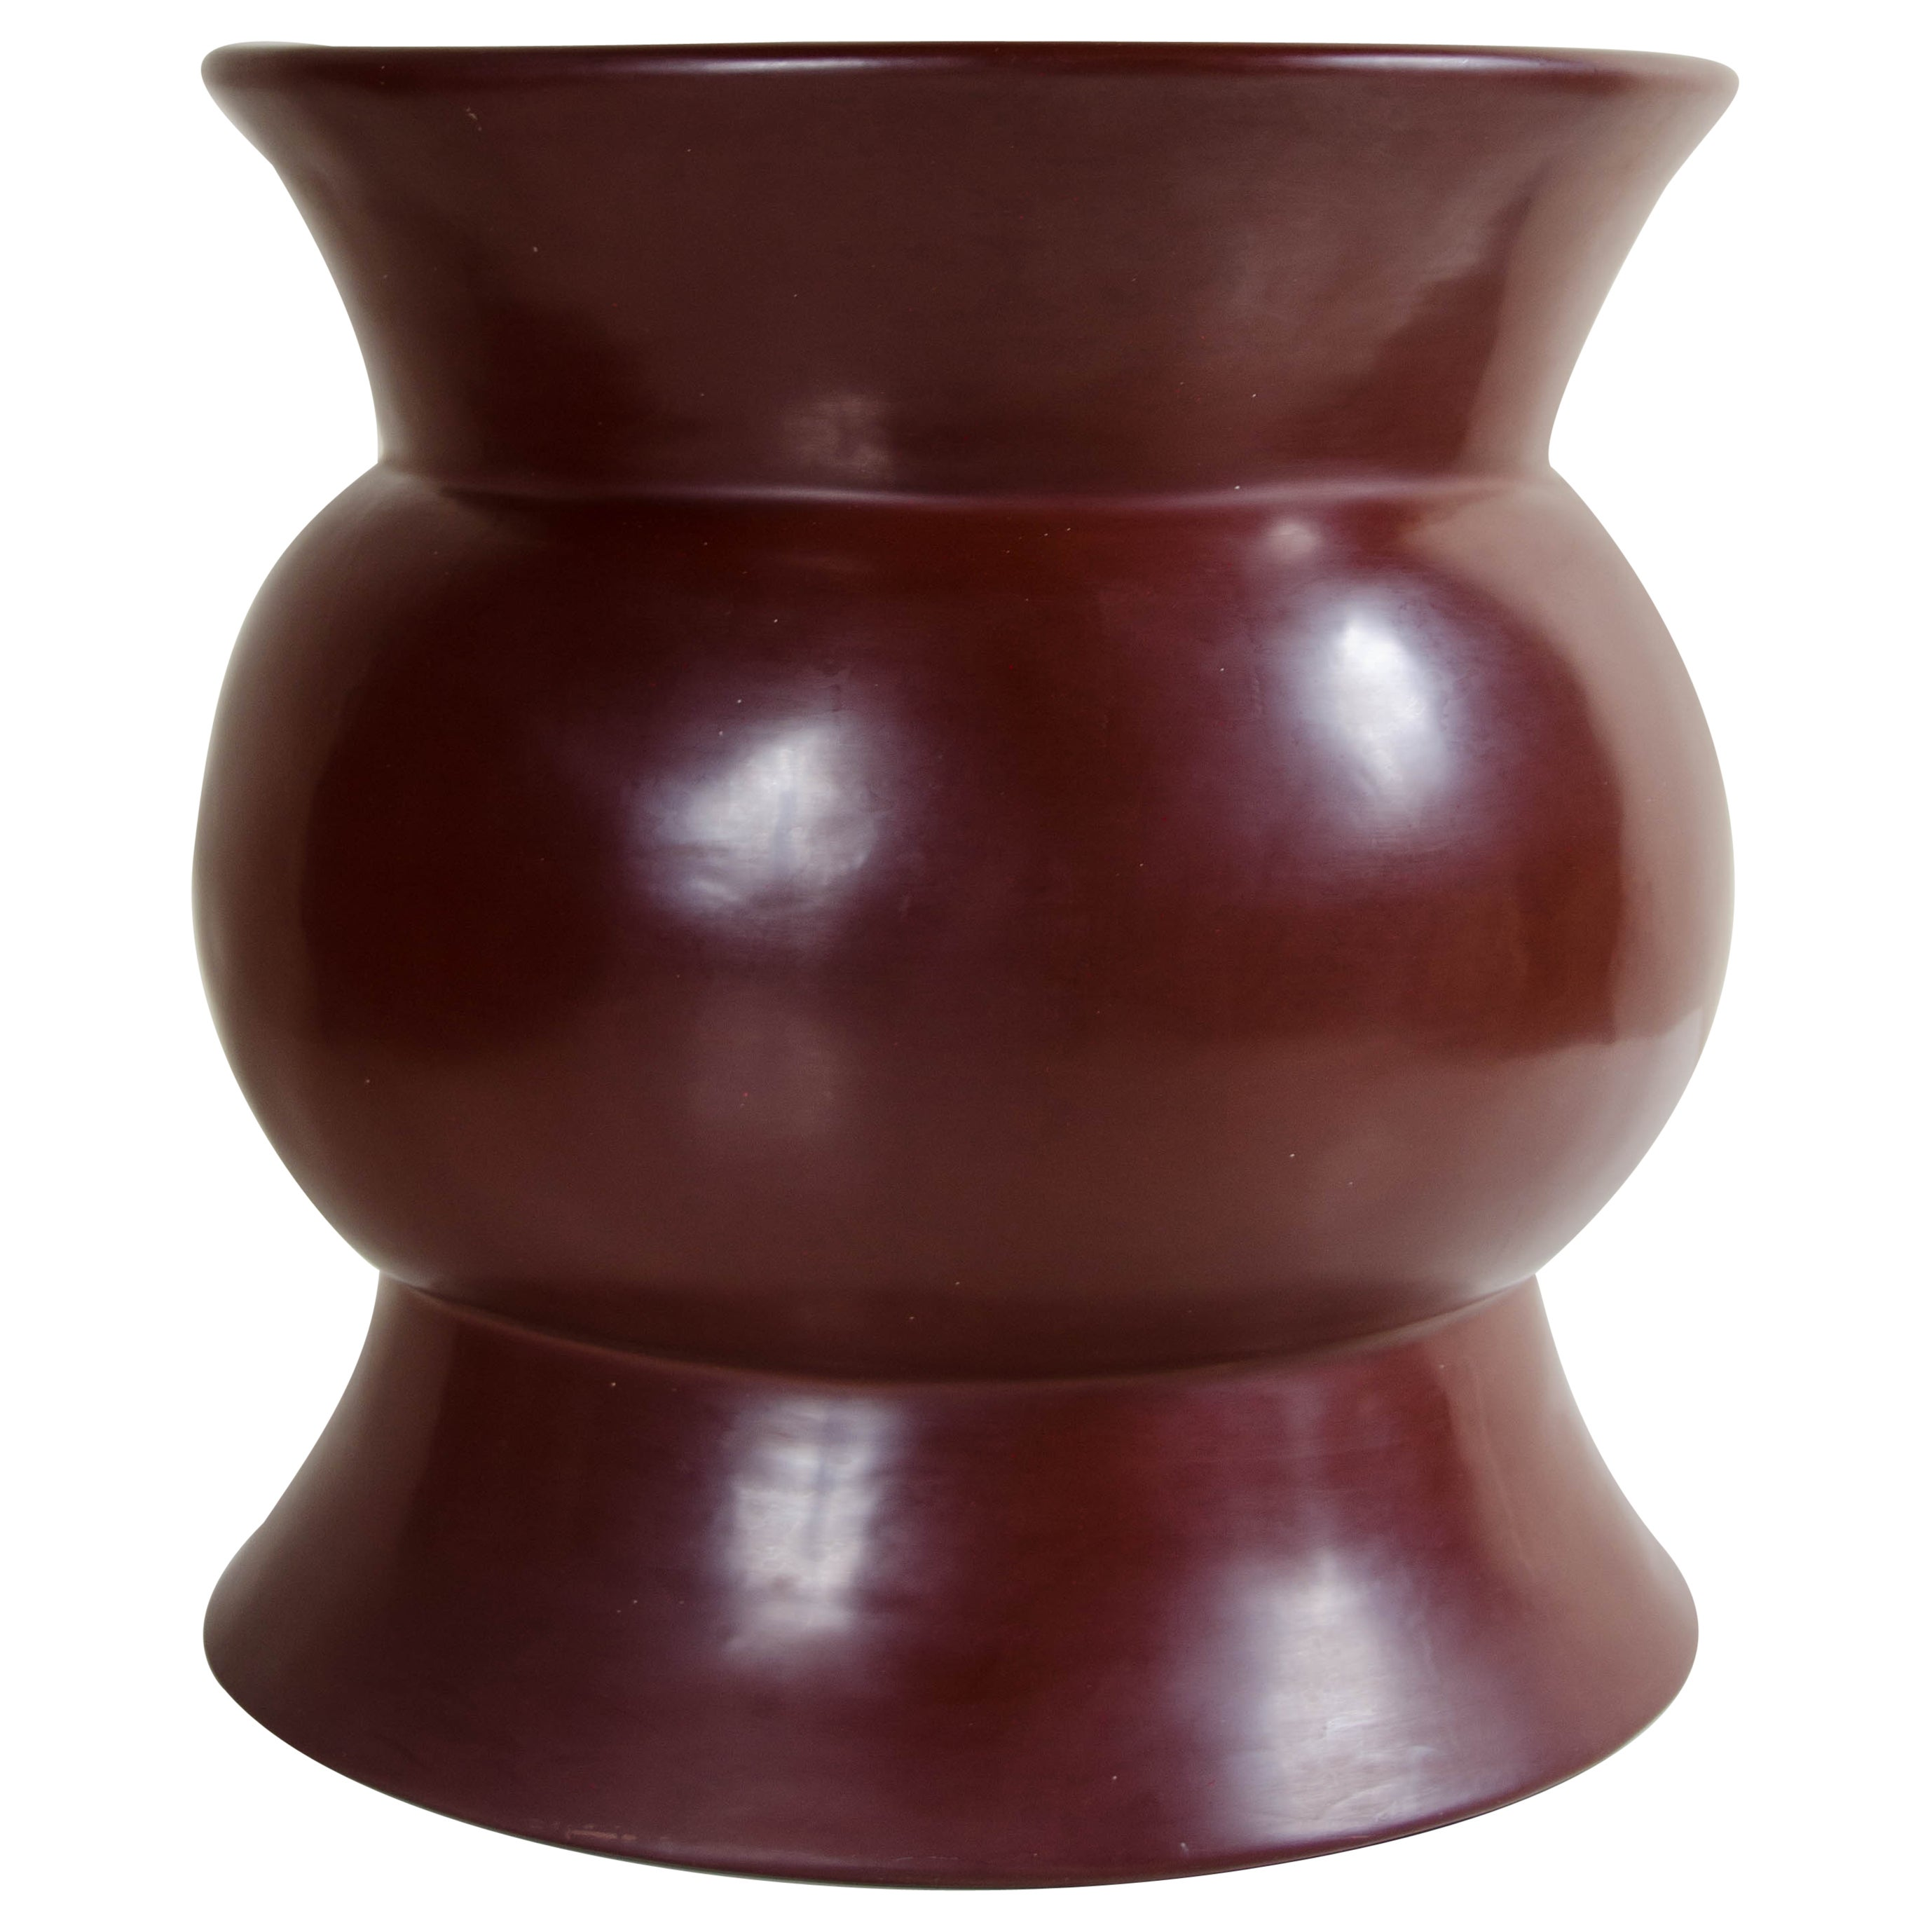 Zun Drumstool, Red Bean Lacquer by Robert Kuo, Handmade, Limited Edition